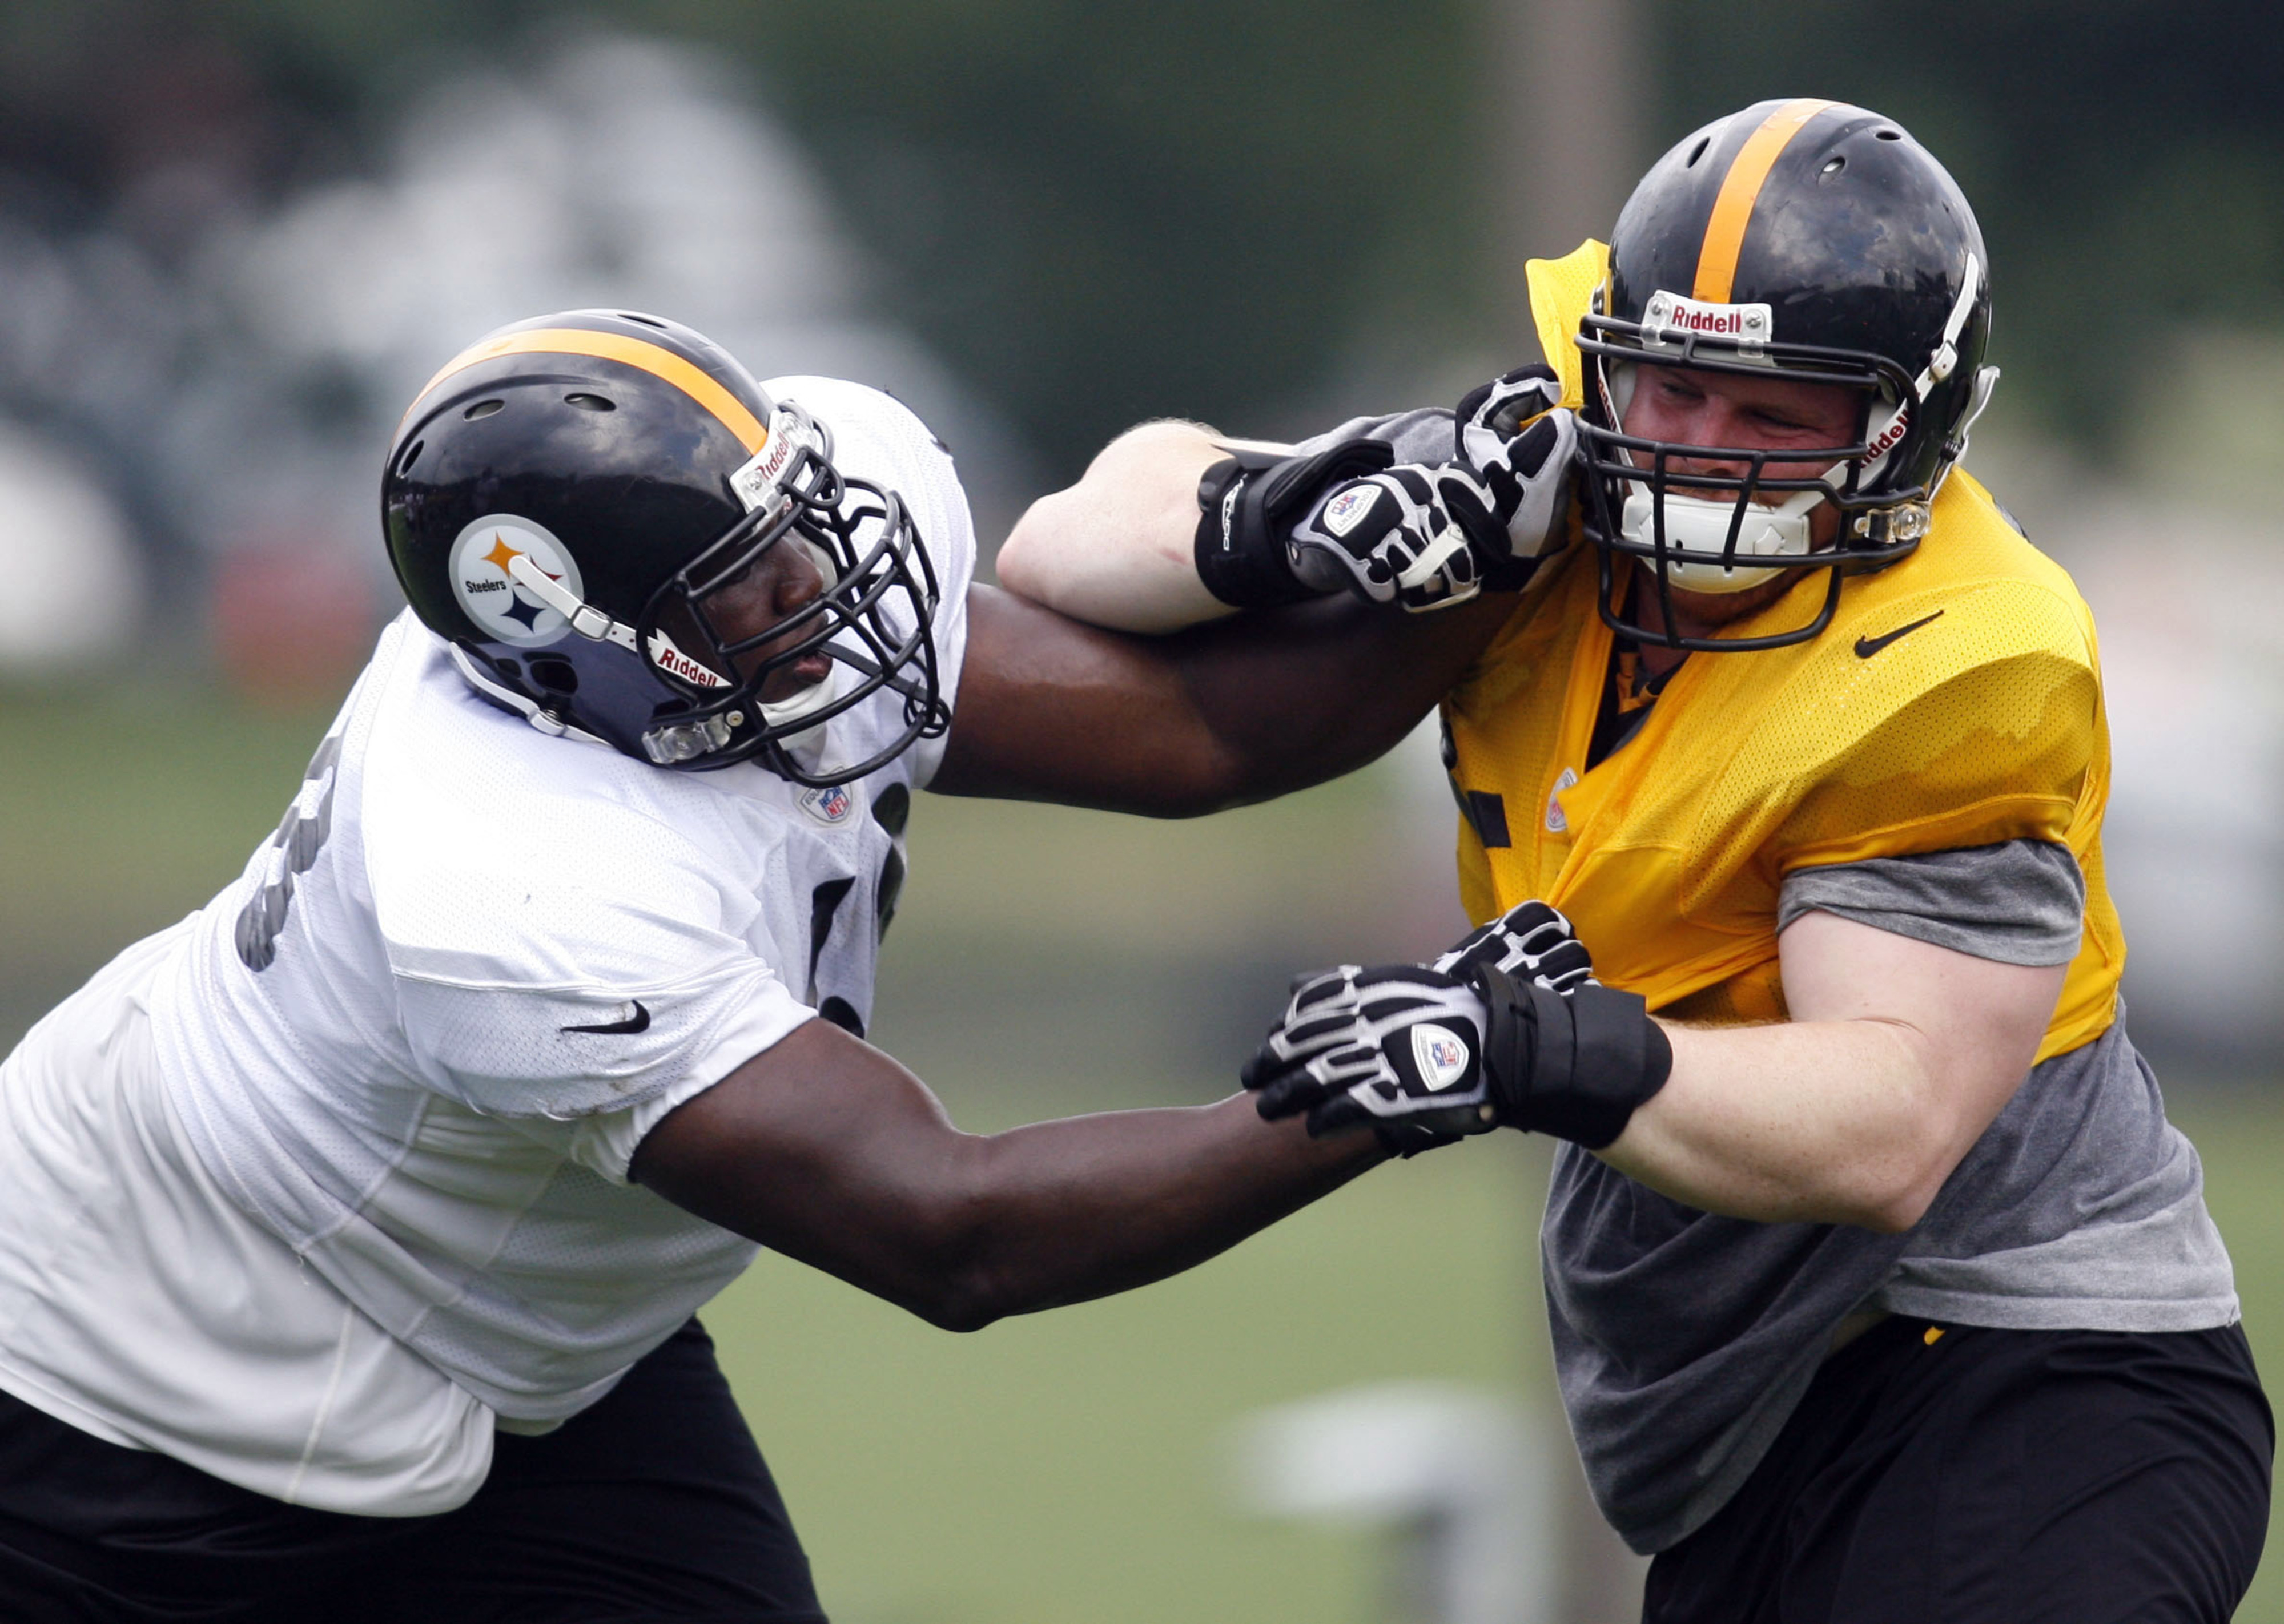 July 28, 2012; Pittsburgh, PA, USA; Pittsburgh Steelers offensive guard Kelvin Beachum (68) blocks against defensive end Jake Stoller (right) during training camp at Saint Vincent College. Mandatory Credit: Charles LeClaire-US PRESSWIRE